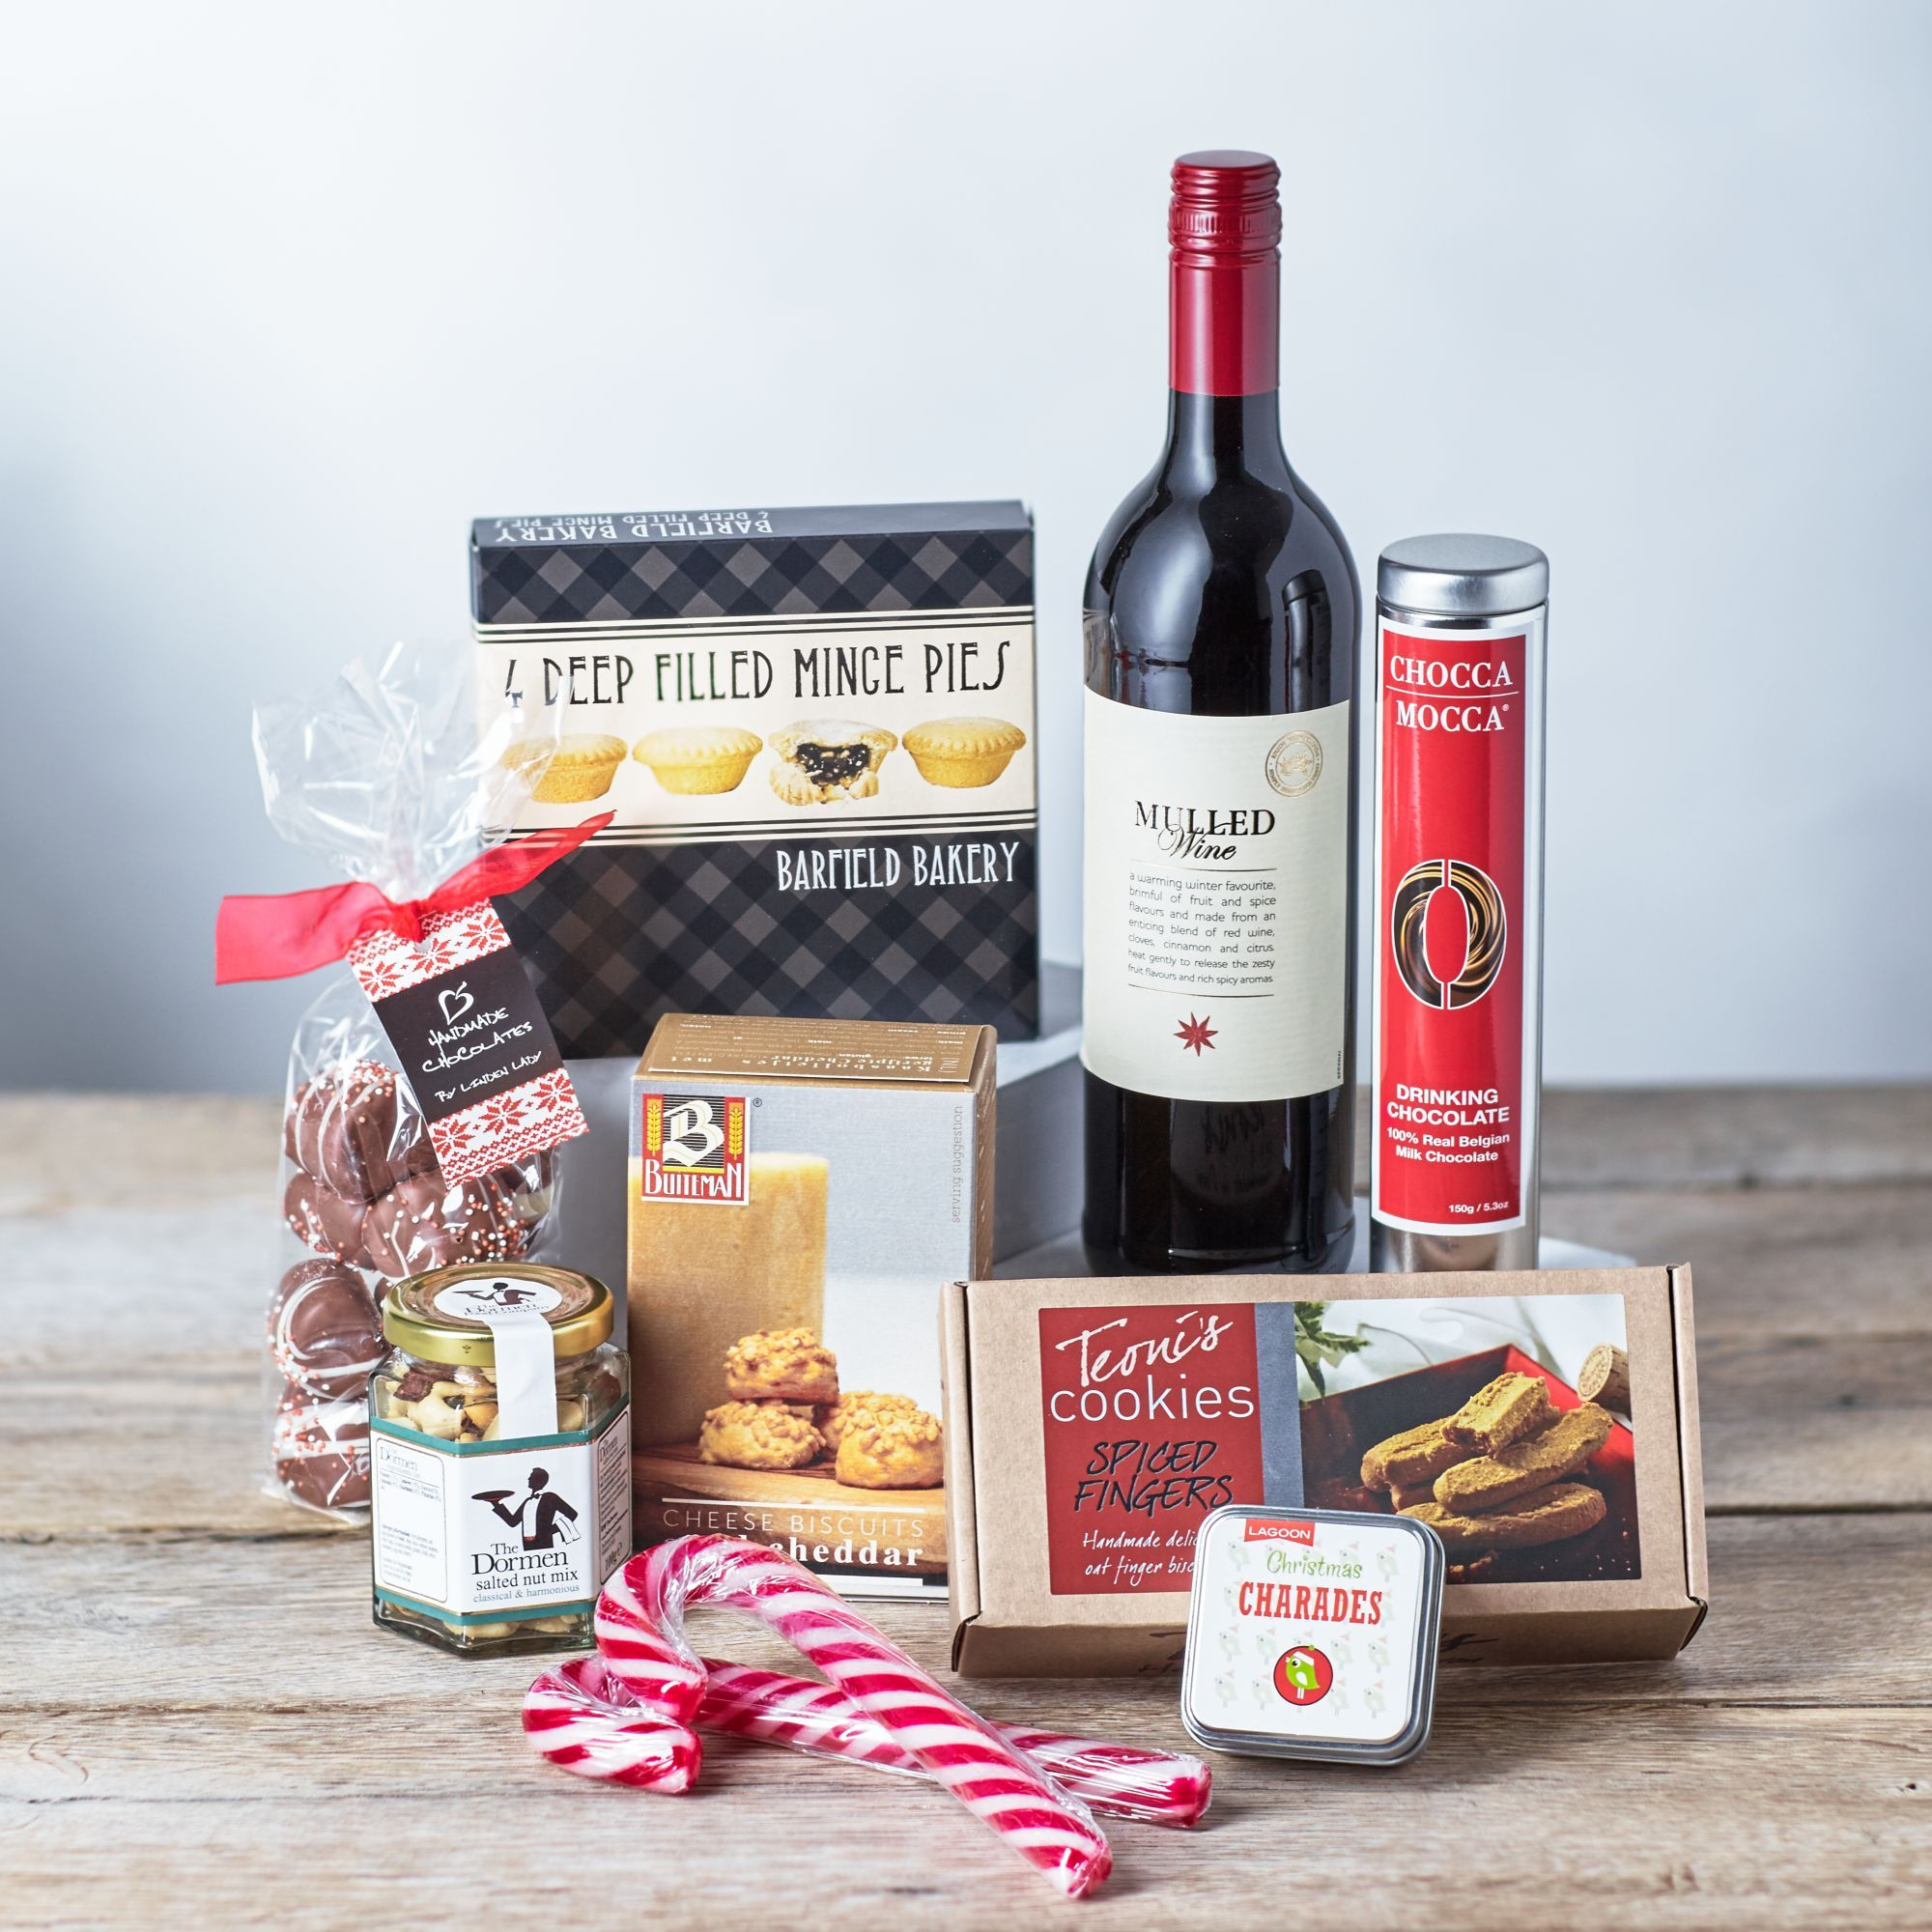 The night before christmas offers waitrose gifts hampers top the night before christmas offers waitrose gifts solutioingenieria Gallery